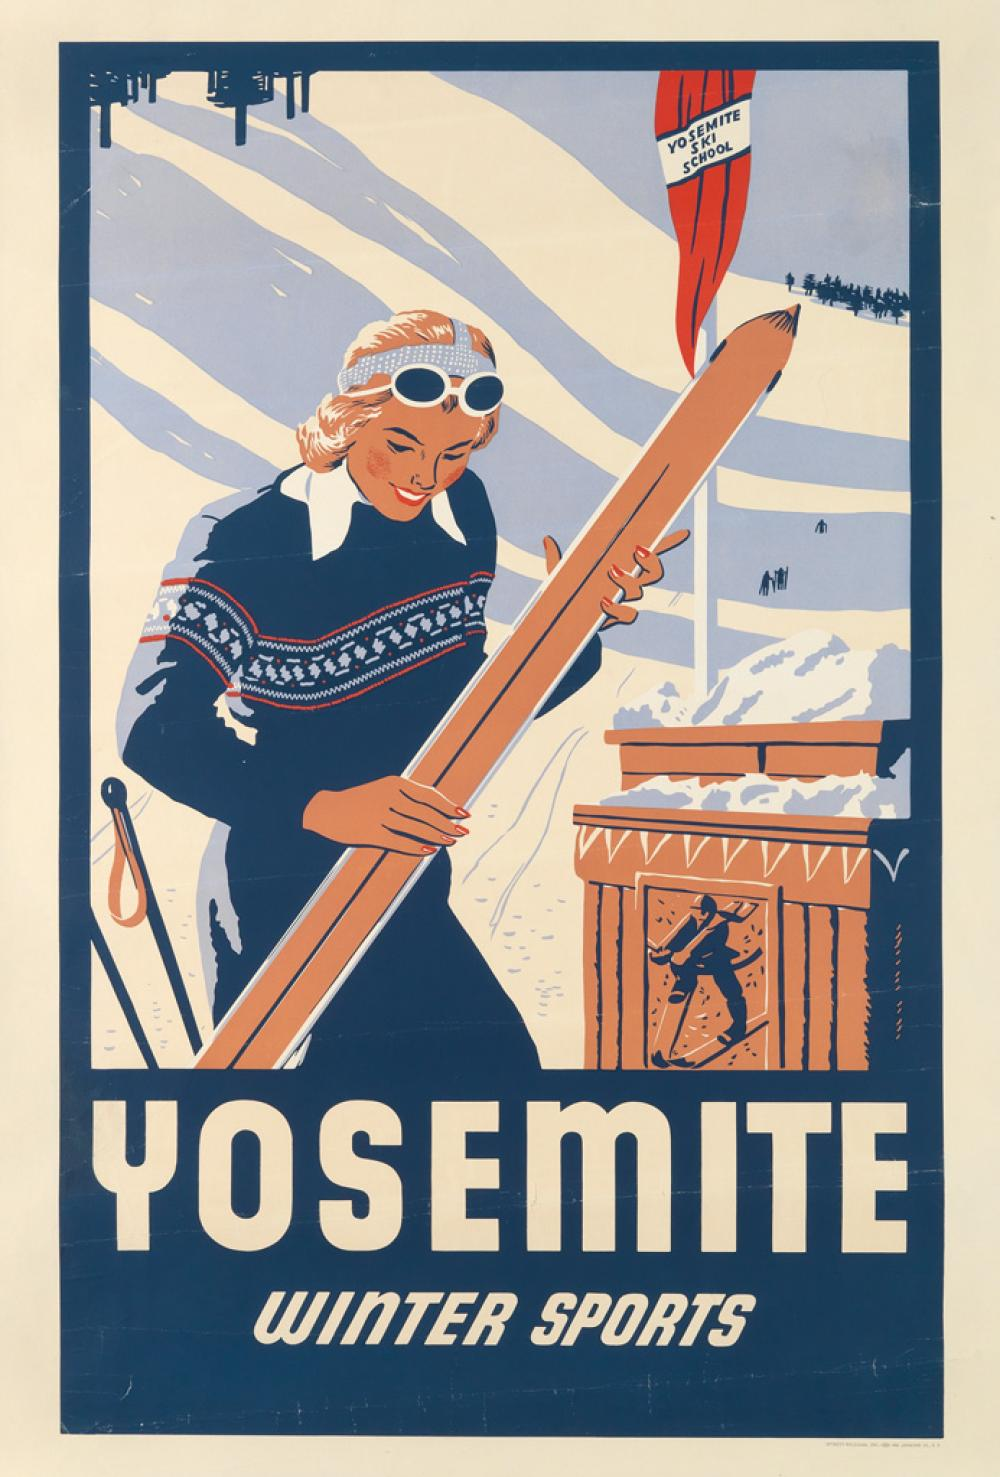 DESIGNER UNKNOWN. YOSEMITE WINTER SPORTS. Circa 1935. 41x28 inches, 106x72 cm. Sterett Williams, Inc., San Francisco.